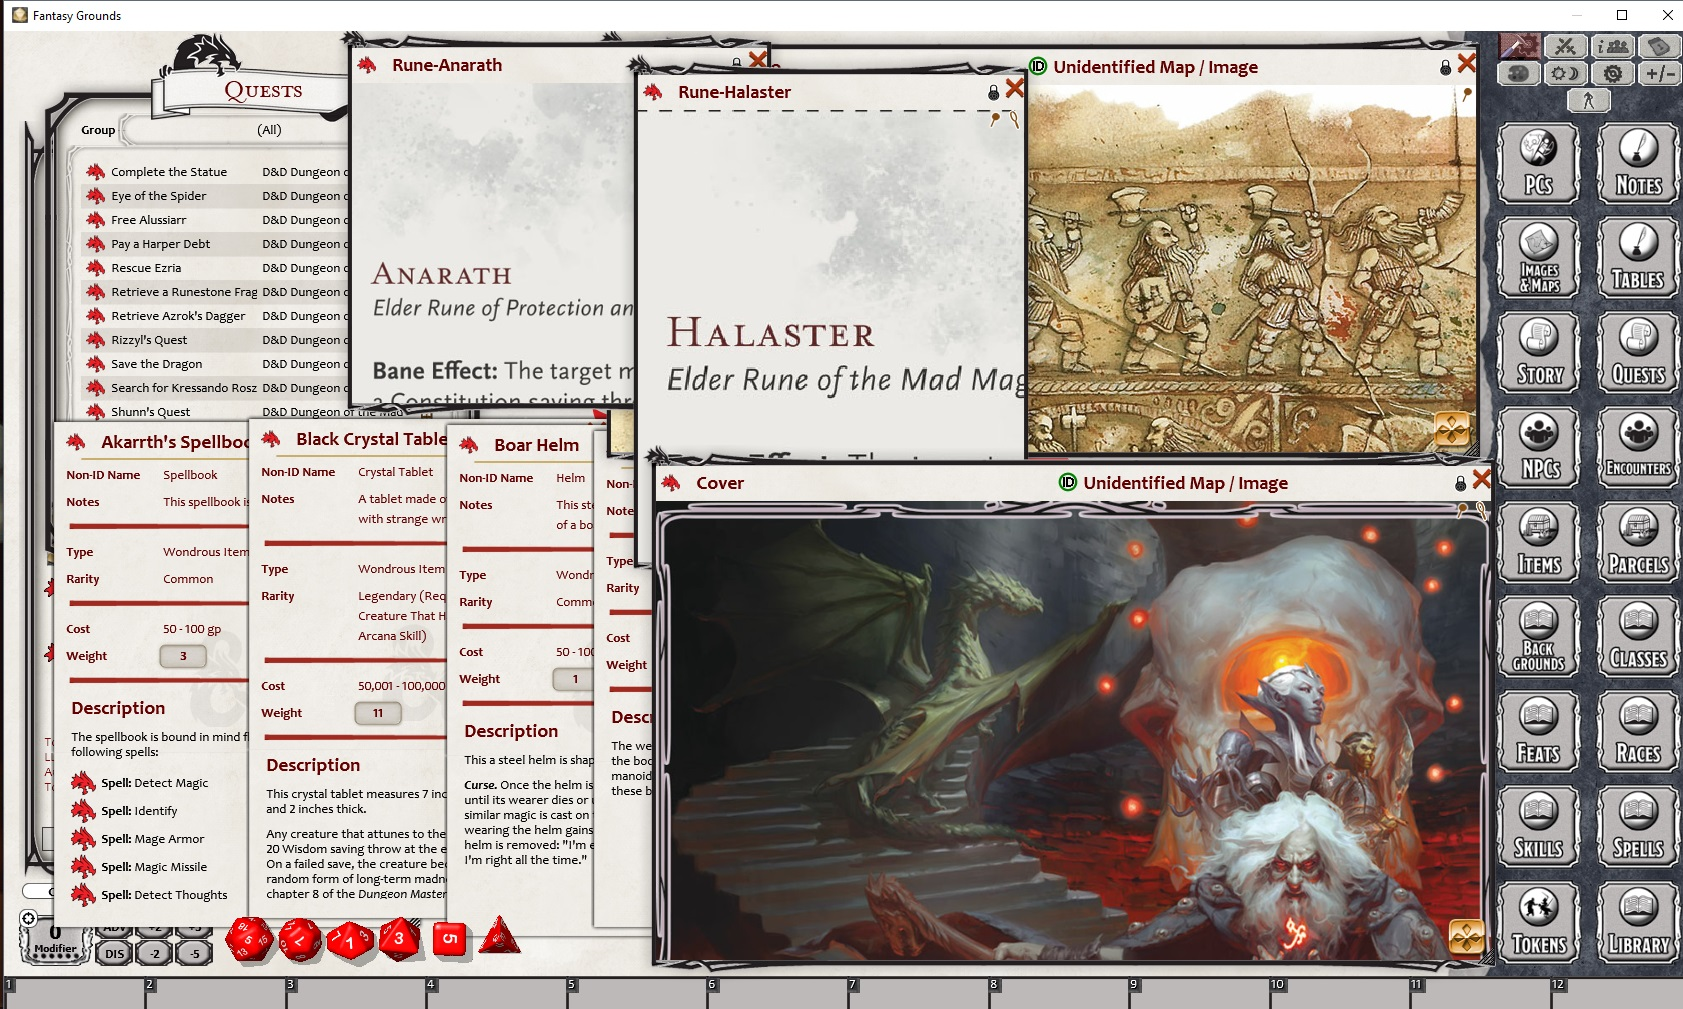 D&D Waterdeep: Dungeon of the Mad Mage for Fantasy Grounds